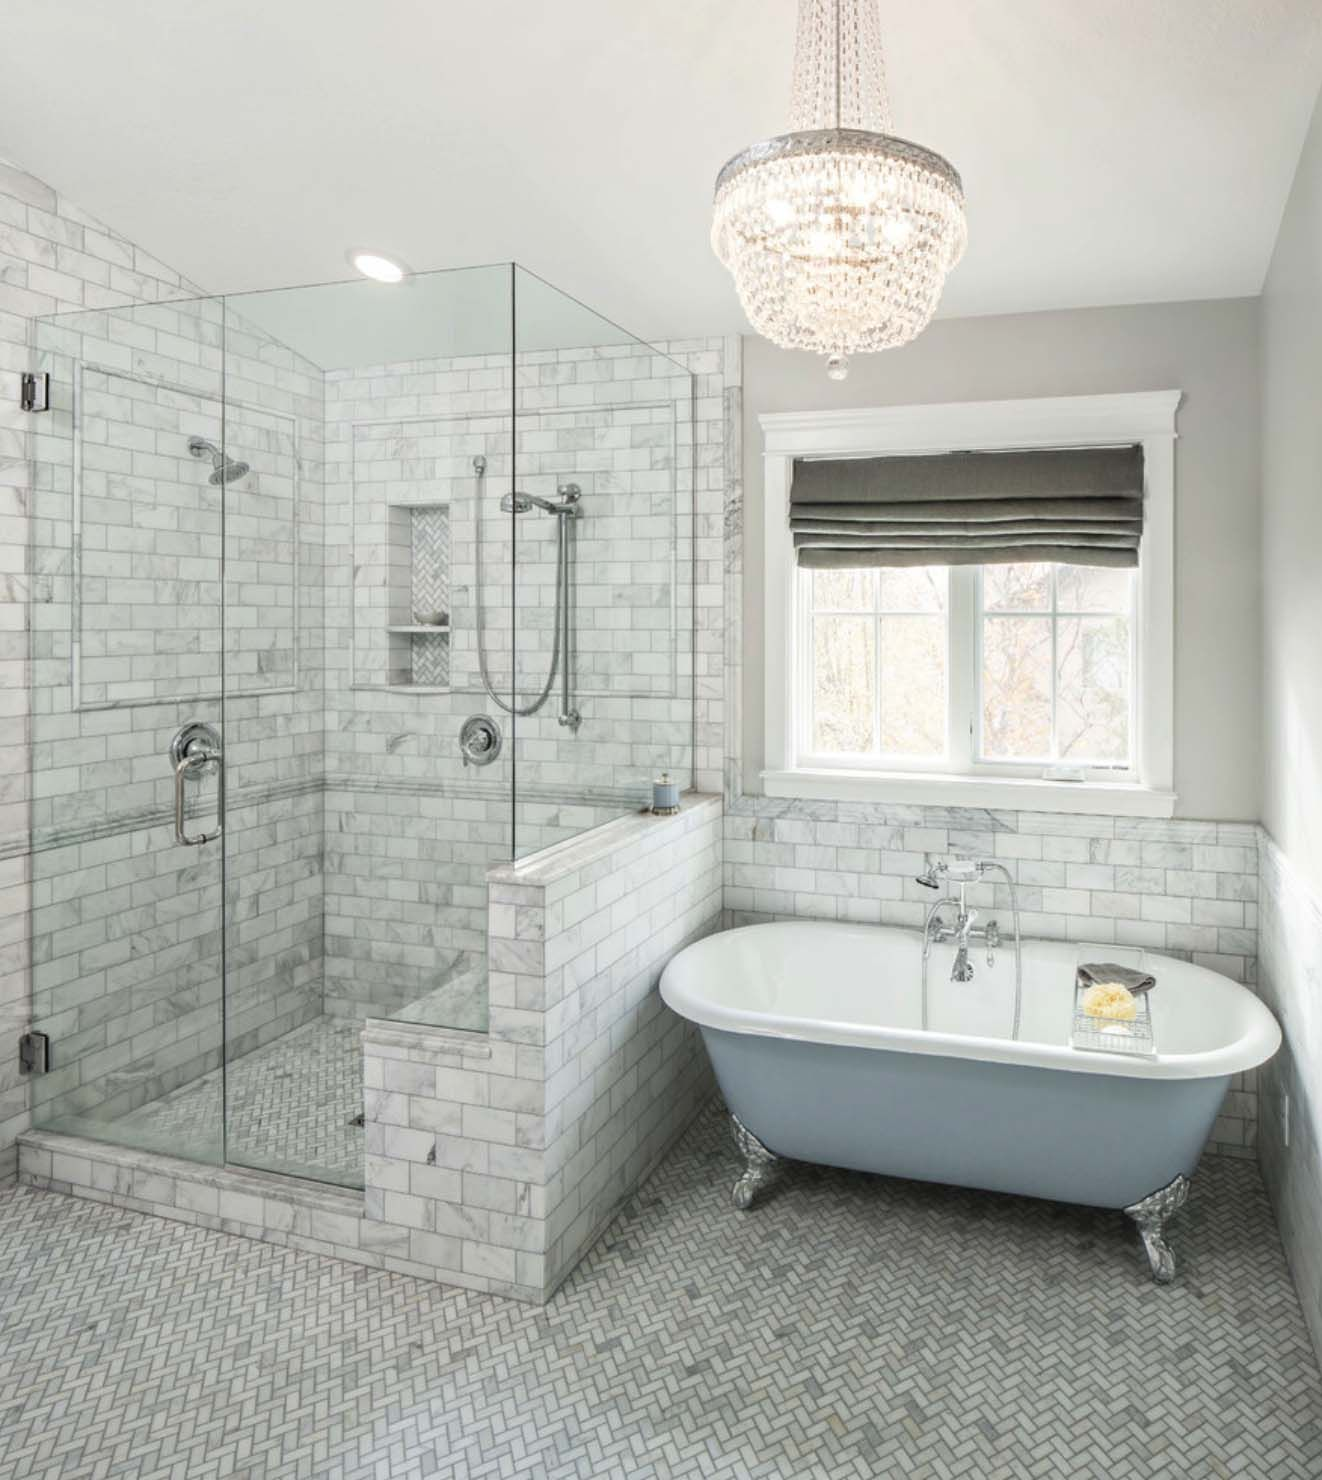 53 Most fabulous traditional style bathroom designs ever | Bathroom ...